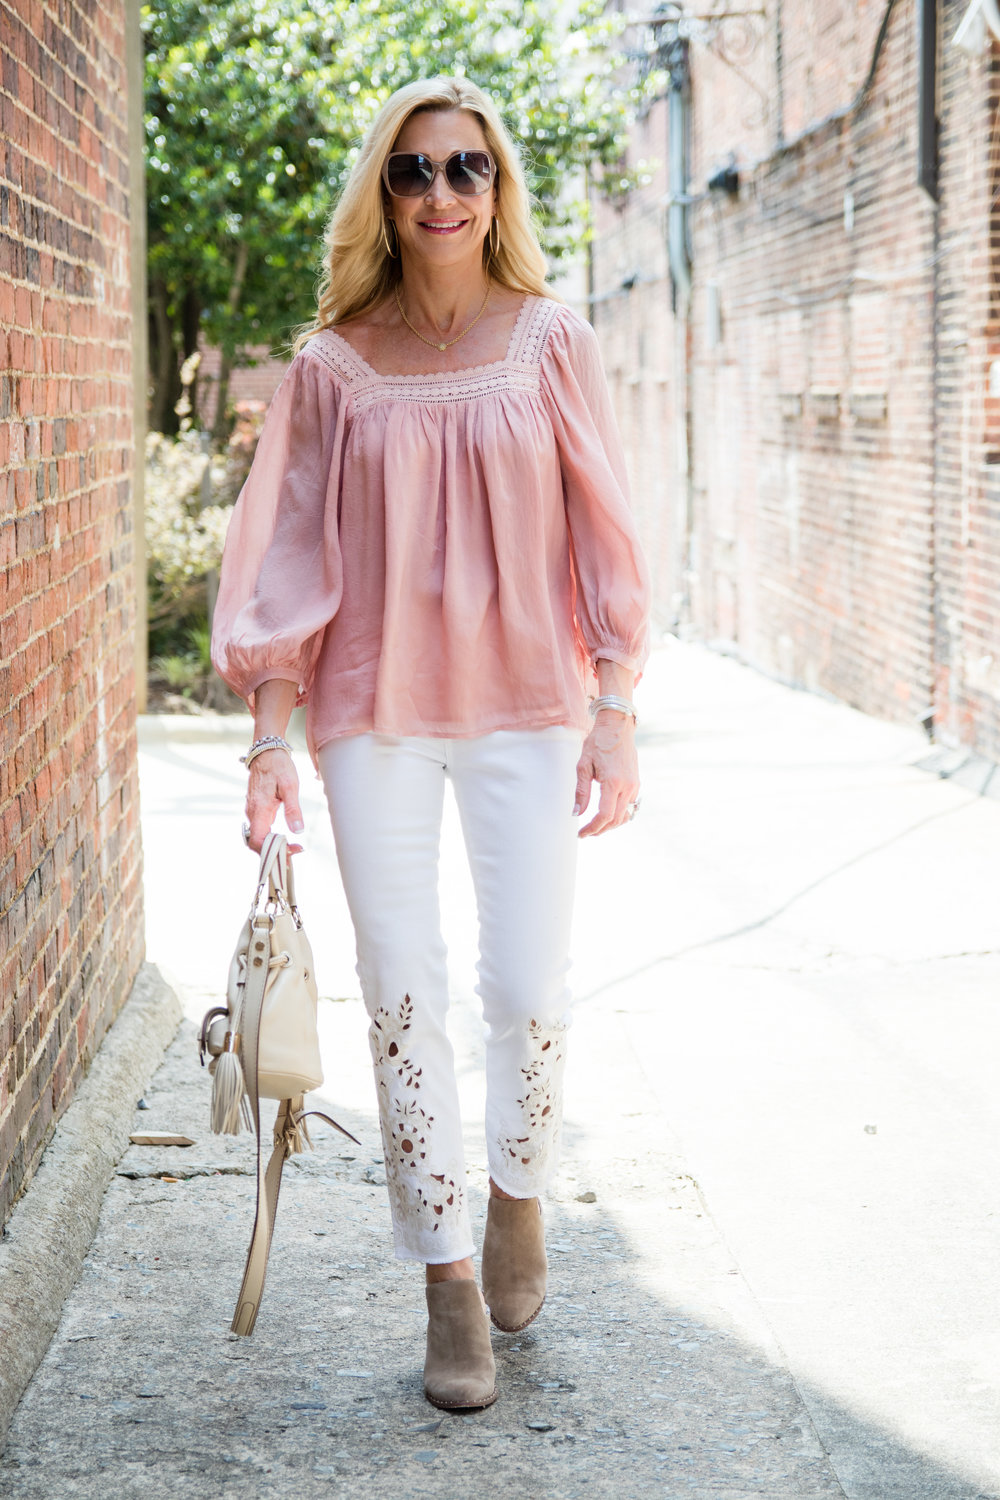 Cute outfit with Free People cutwork jeans and boho top